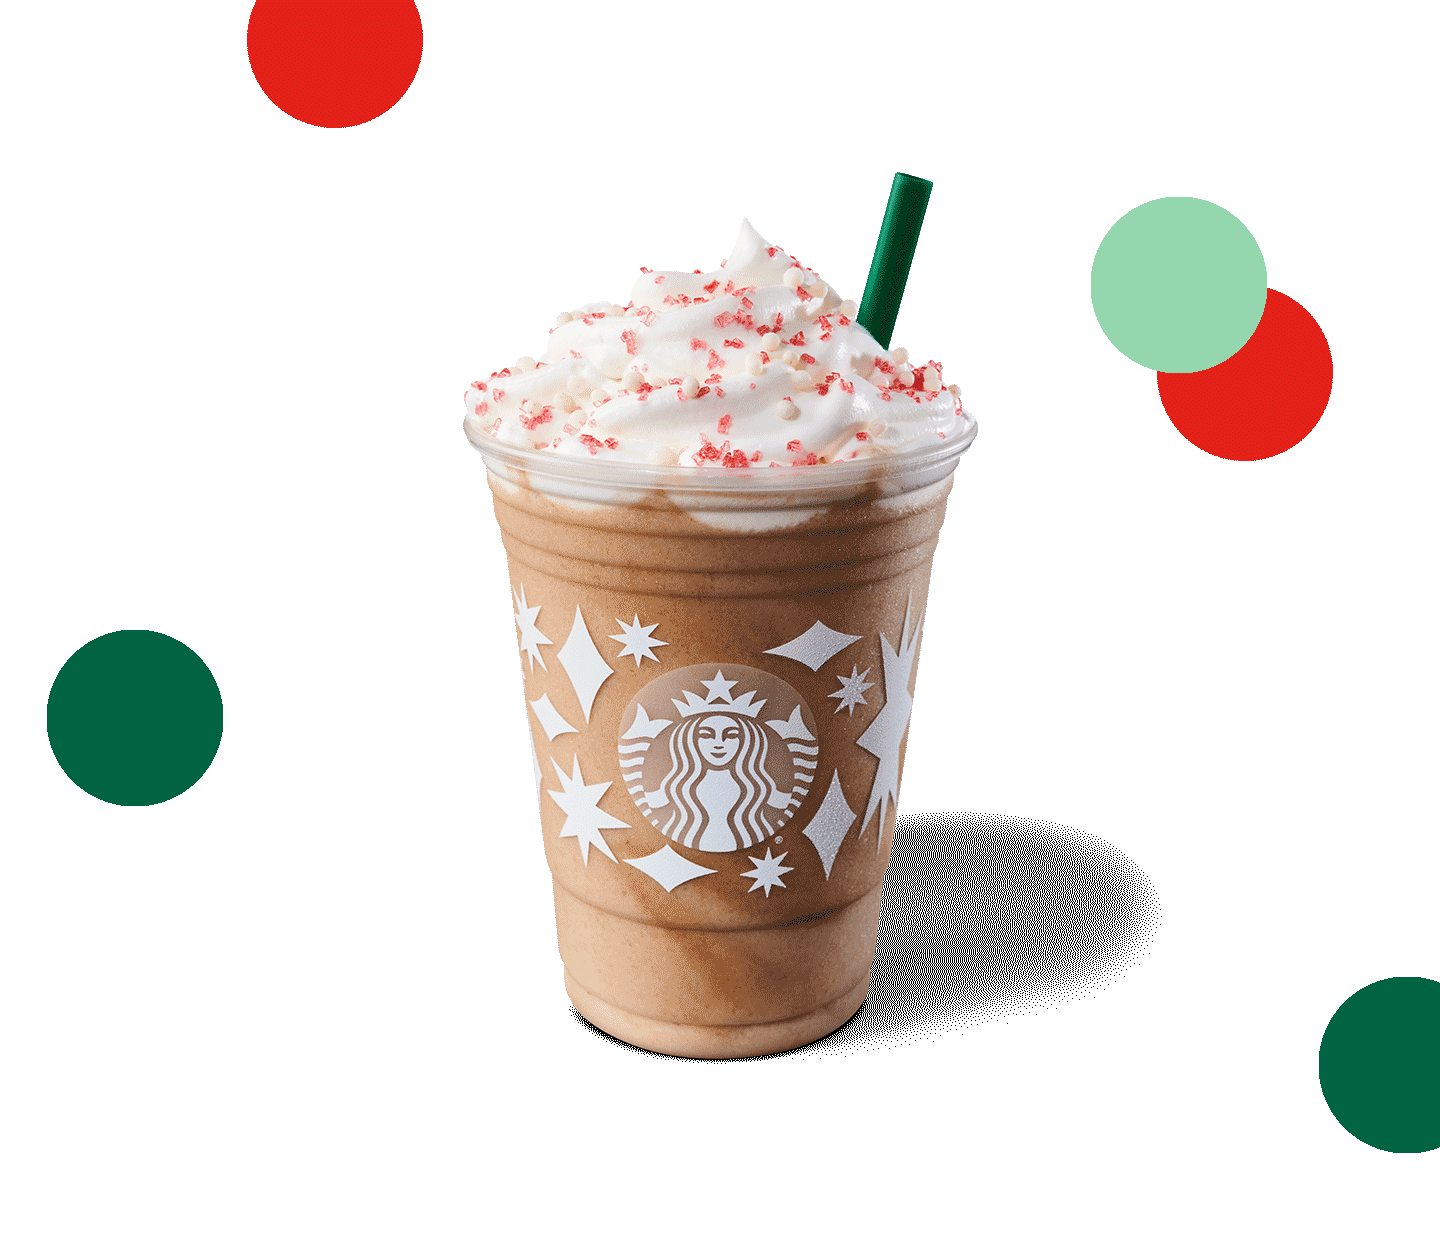 Frappuccino® with a topping of whipped cream, festive holiday sugar sparkles, and crispy white pearls.